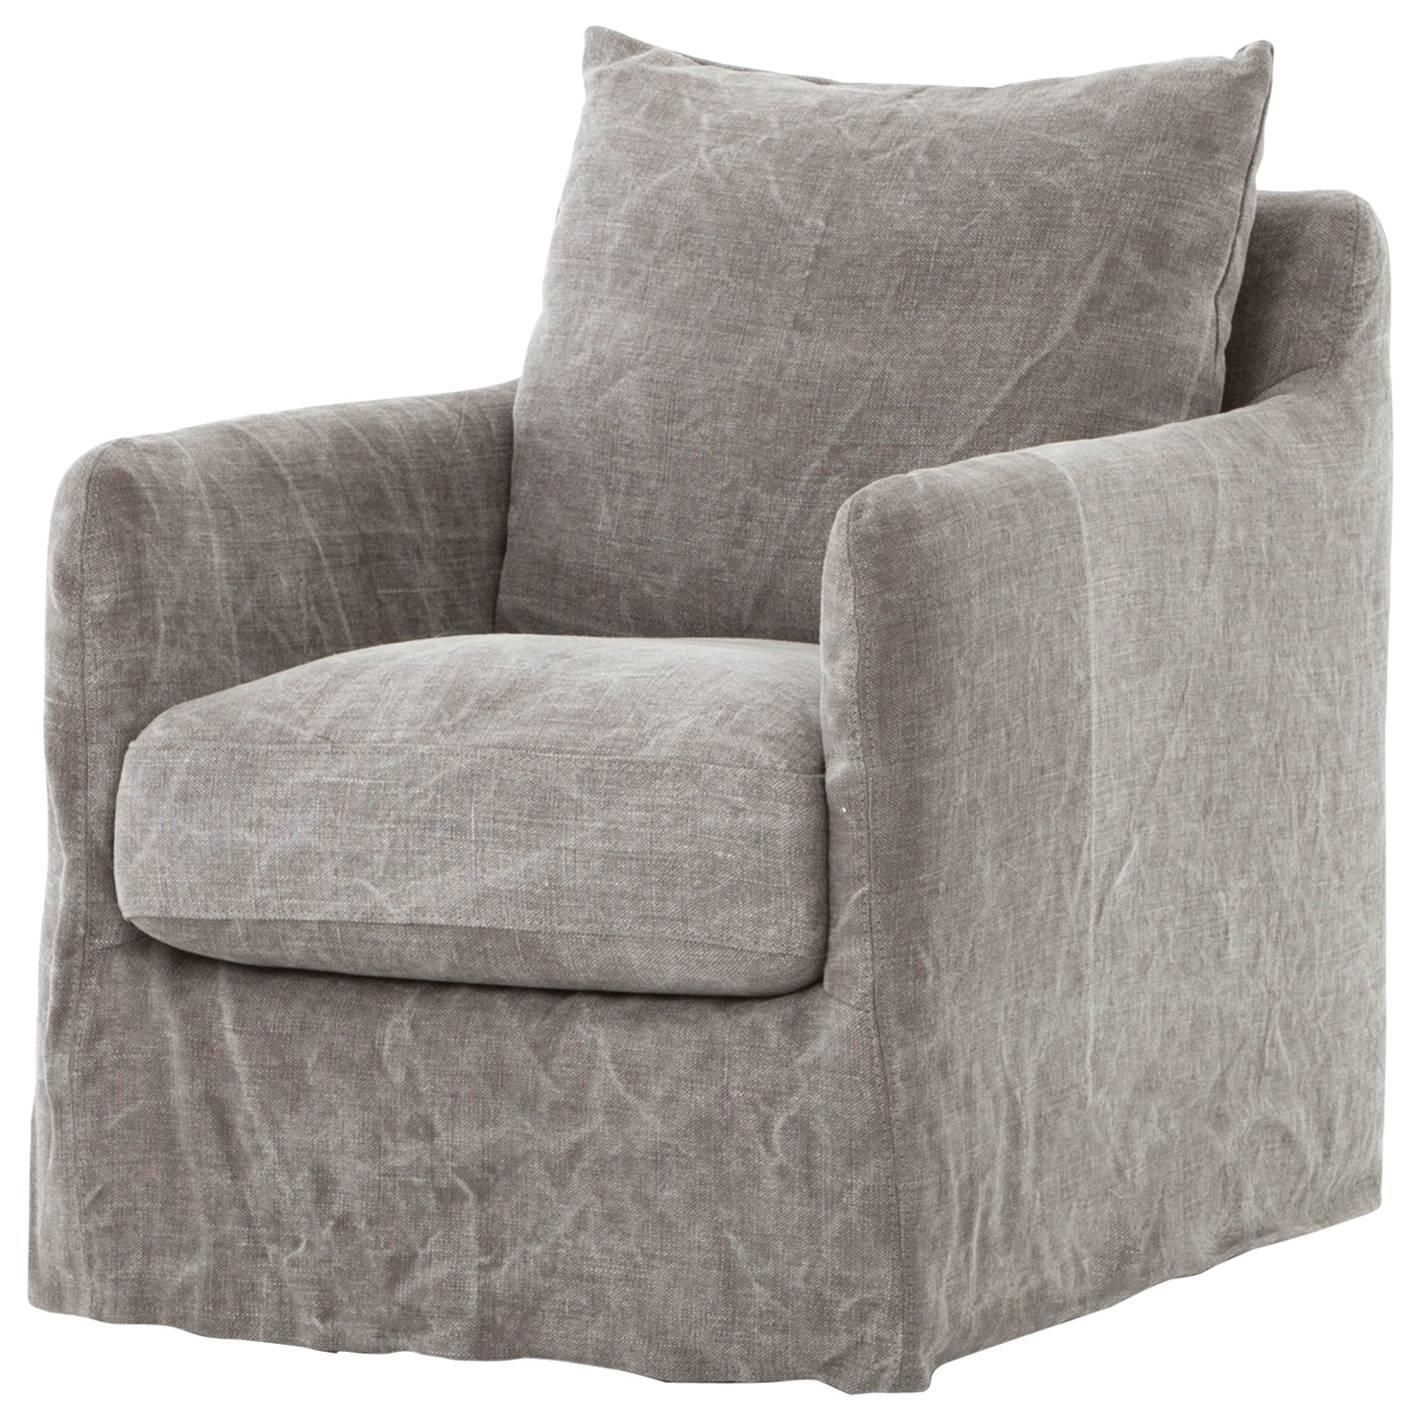 Modern Slipcovered Swivel Chair | Home Decor | Pinterest | Swivel In Nichol Swivel Accent Chairs (Photo 8 of 20)